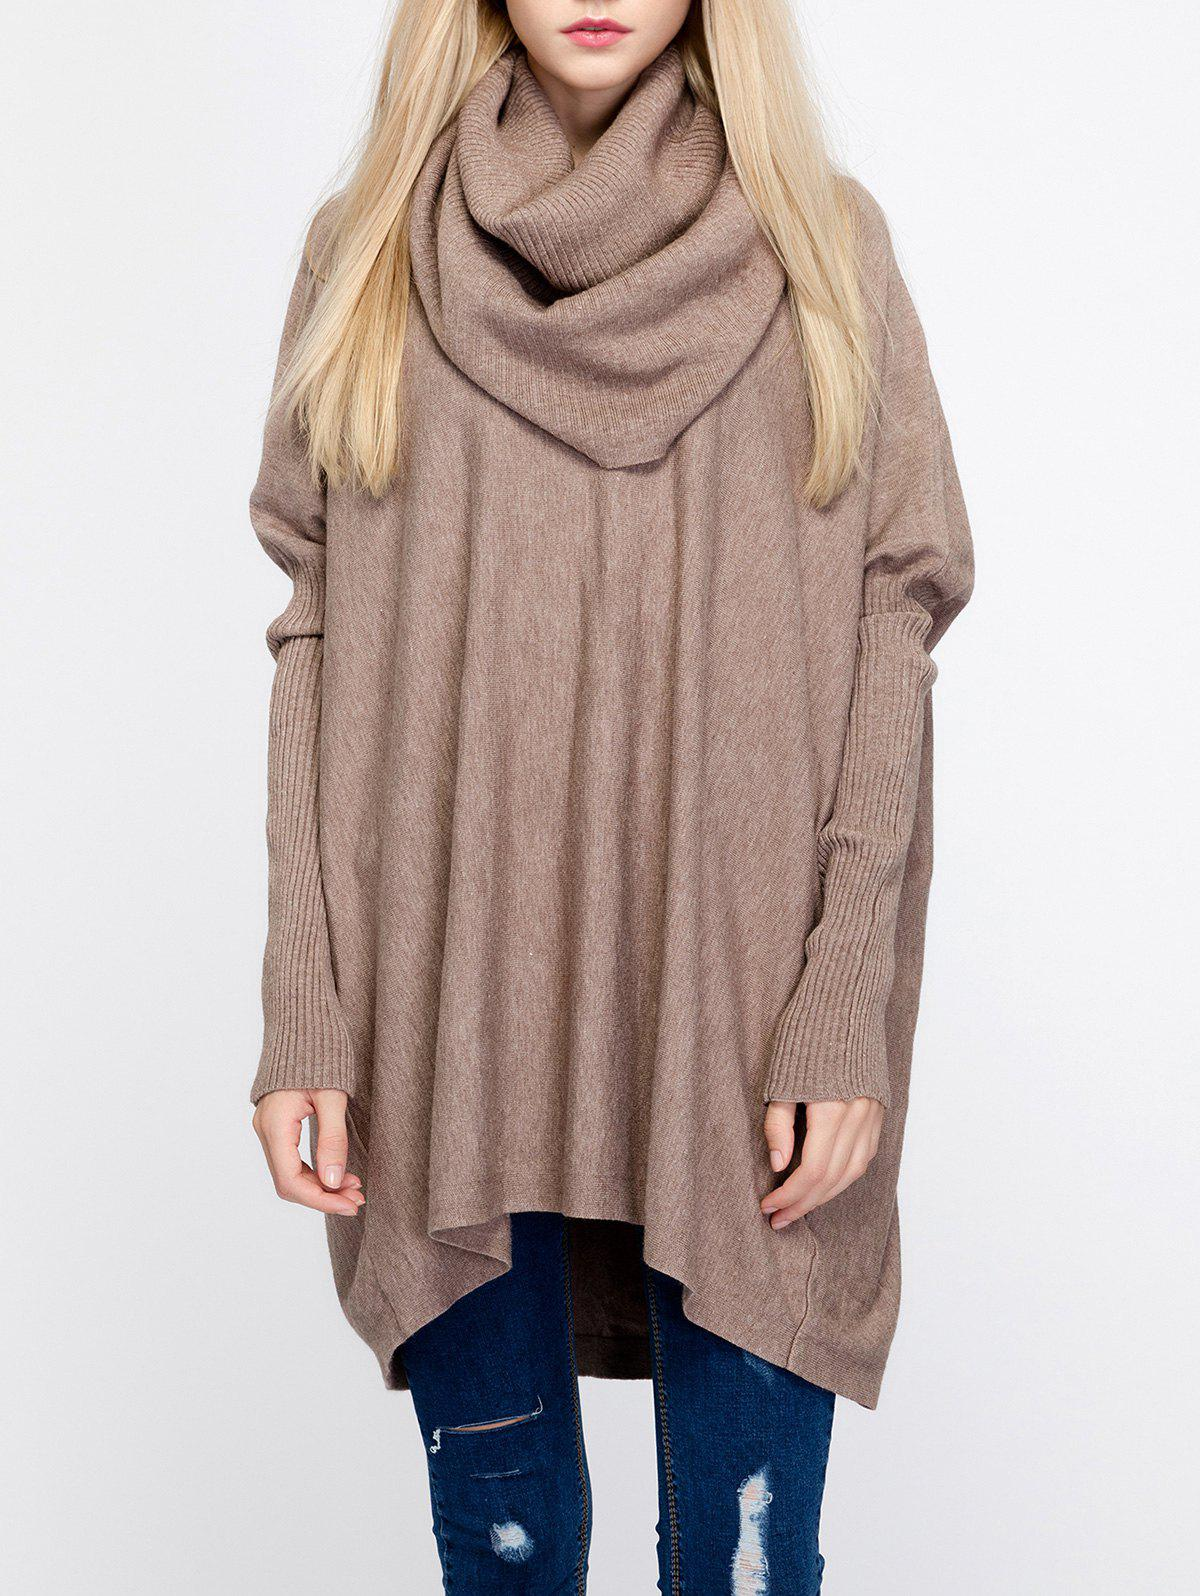 Oversized Turtleneck Tunic Long SweaterWOMEN<br><br>Size: ONE SIZE; Color: CAMEL; Type: Pullovers; Material: Nylon; Sleeve Length: Full; Collar: Turtleneck; Style: Fashion; Pattern Type: Solid; Season: Fall,Spring,Winter; Weight: 0.432kg; Package Contents: 1 x Sweater;